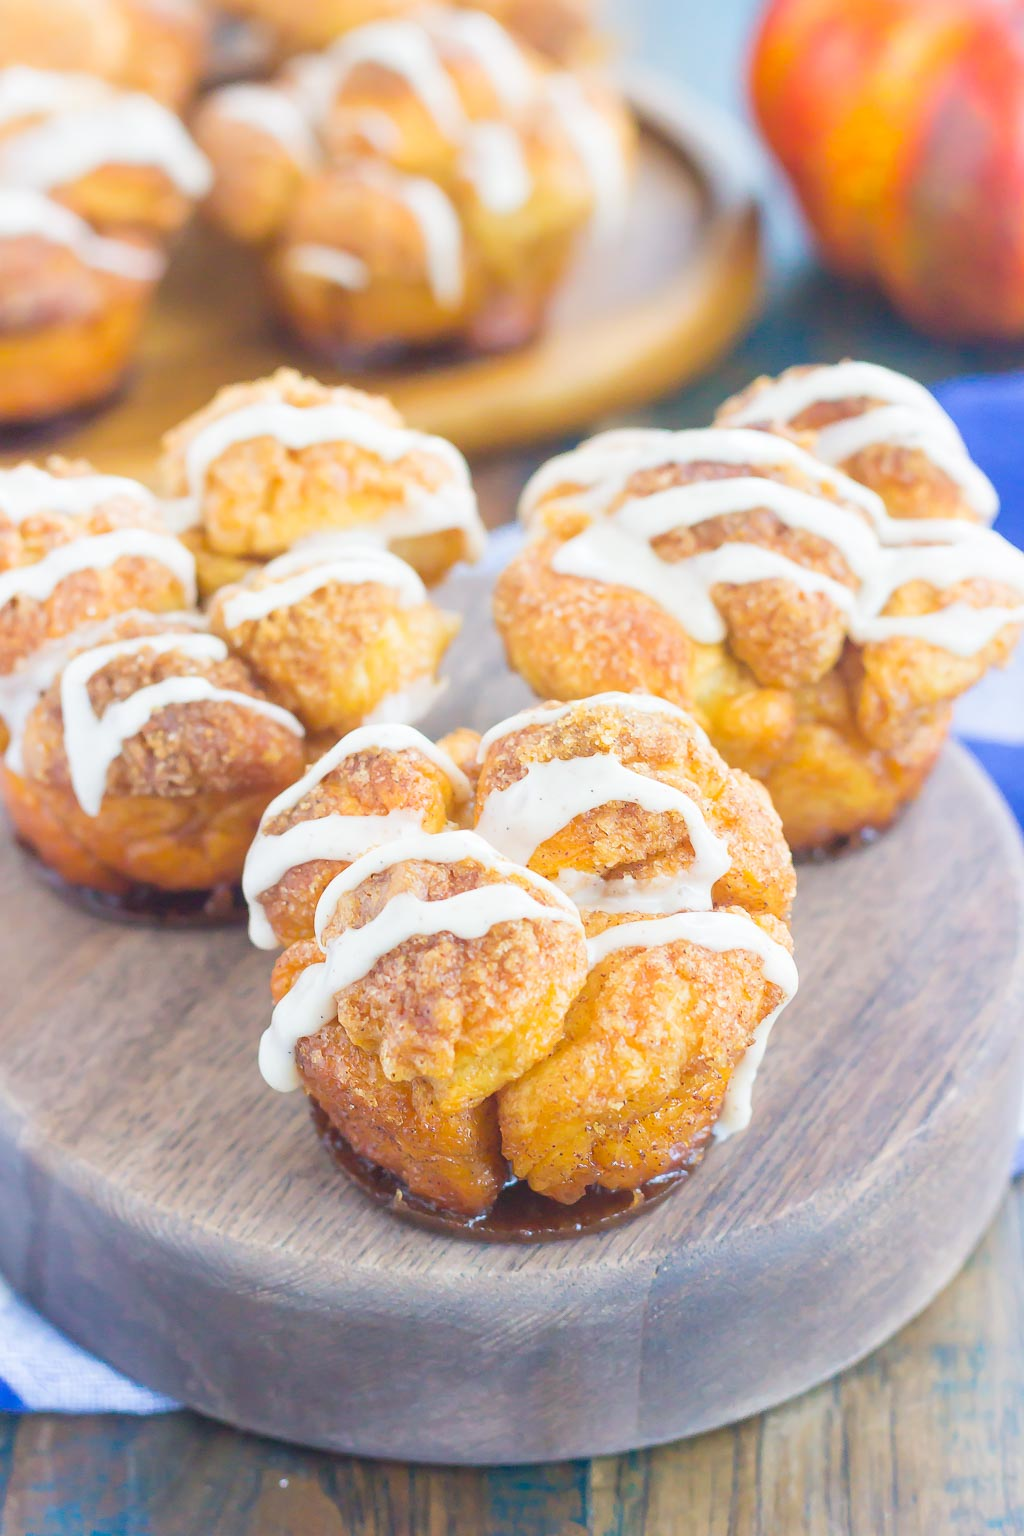 These Pumpkin Spice Monkey Bread Muffins are a simple treat that's perfect for breakfast or dessert. Pre-made dough is rolled in a cozy pumpkin spice blend and then baked in muffin cups. Topped with a sweet pumpkin glaze and great for the holidays, this gooey muffin is sure to impress everyone!